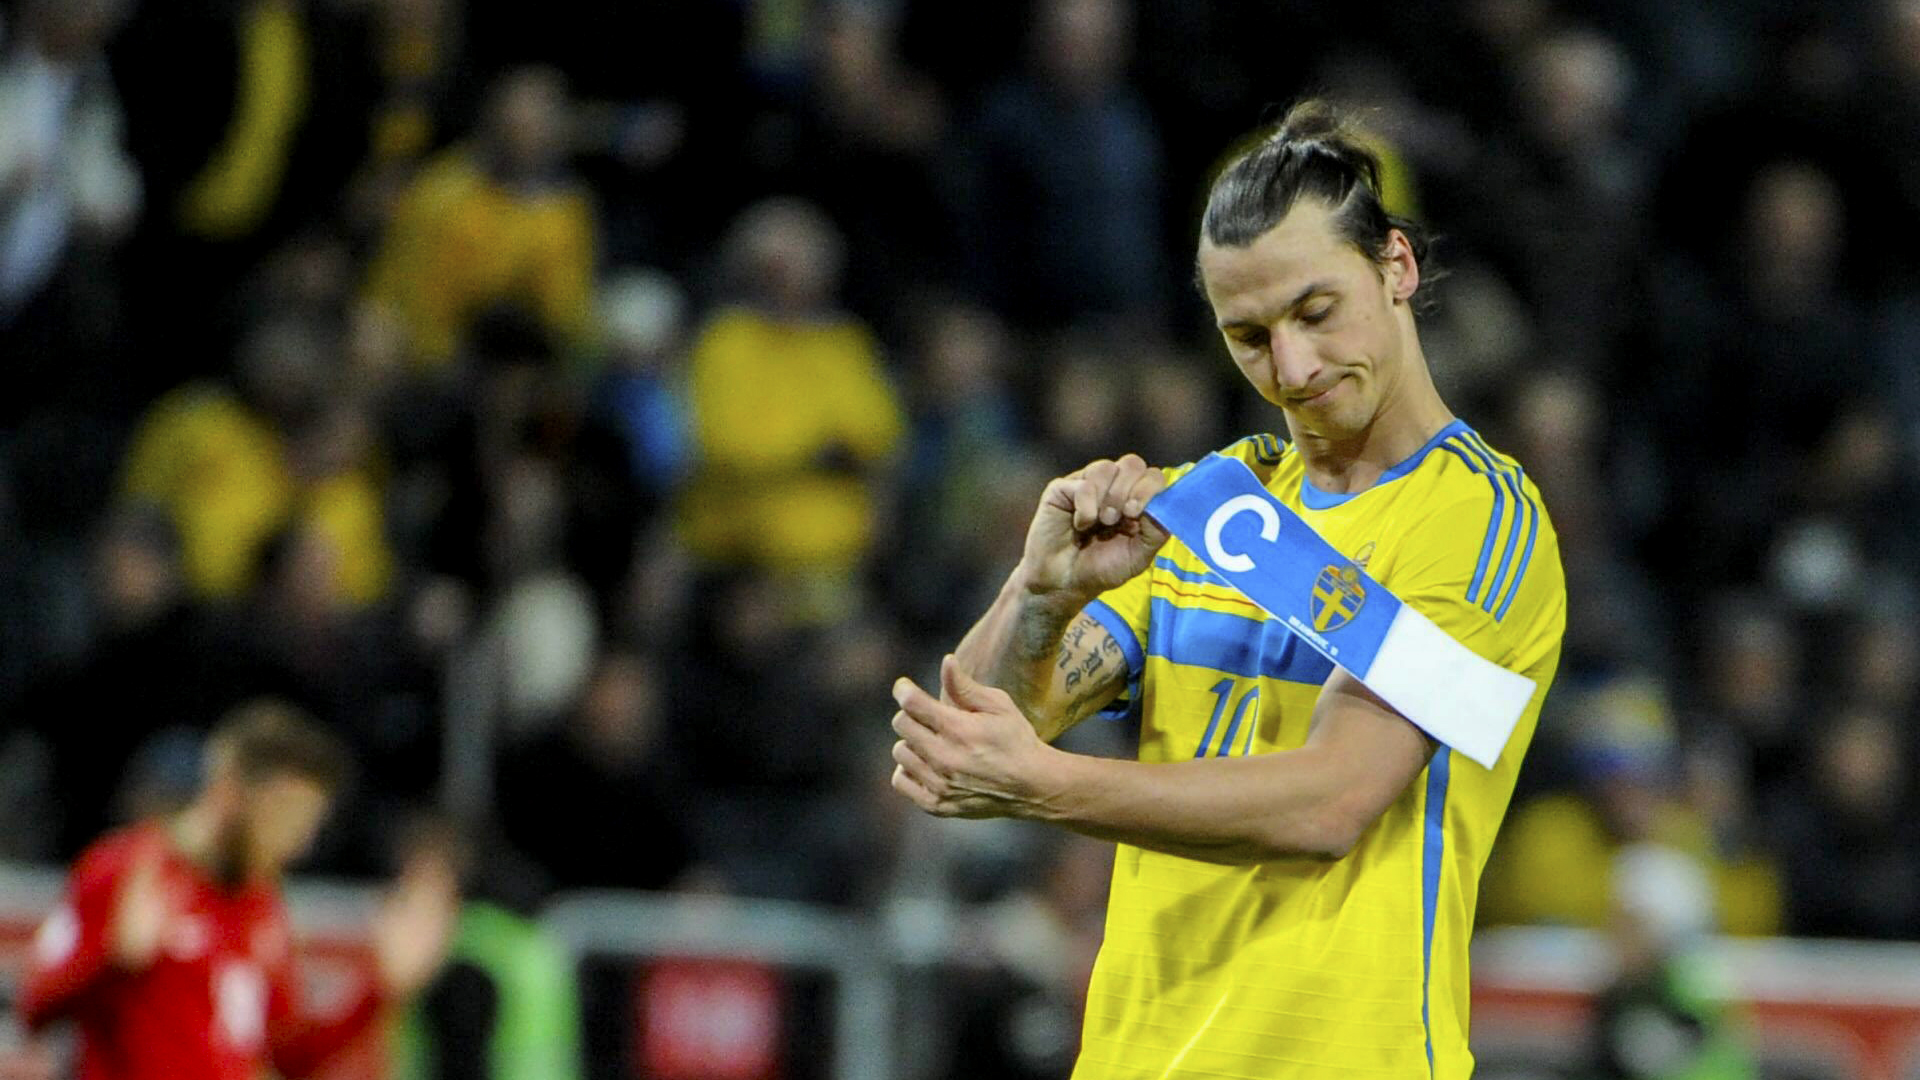 Download Zlatan Ibrahimovic Show Label Images Hd Free